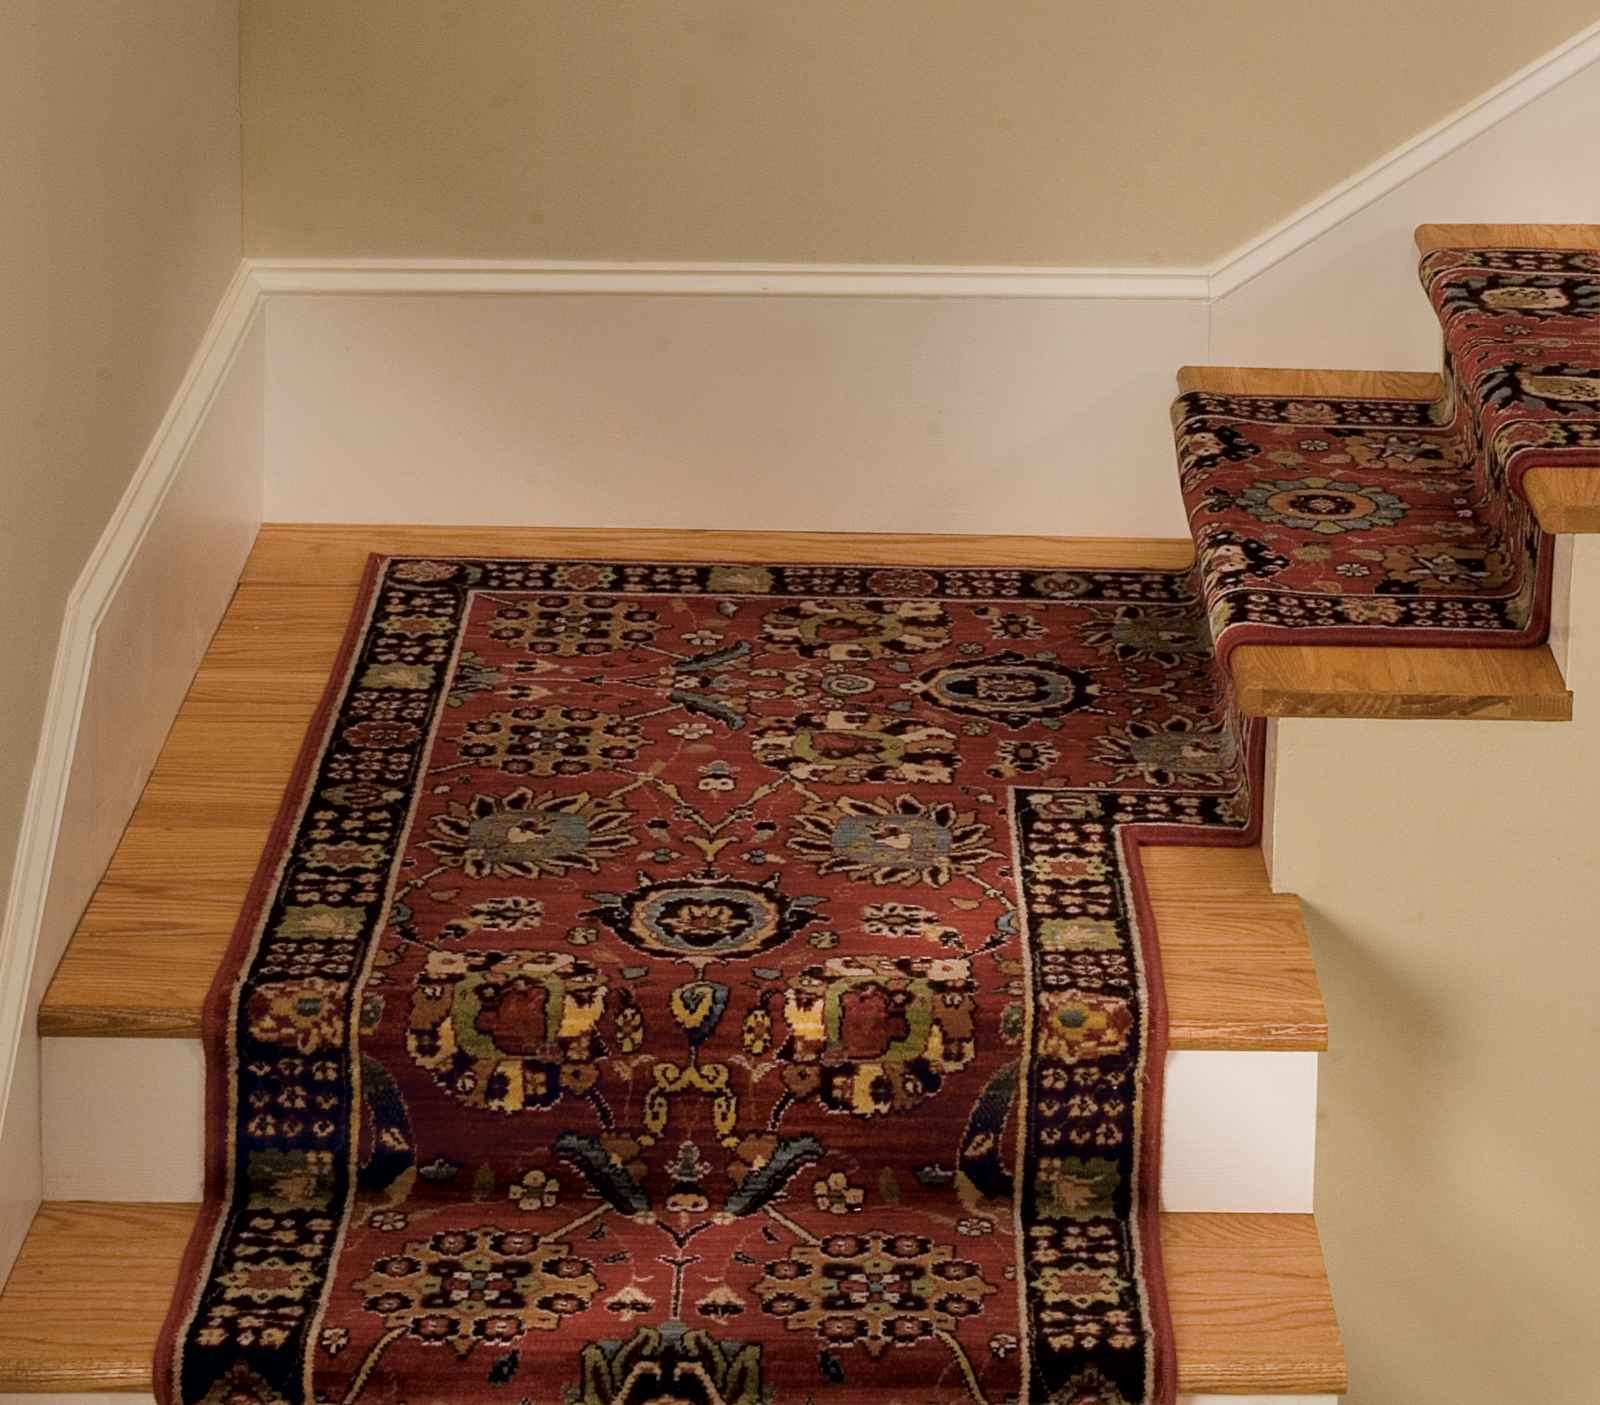 Carpet Stair Runner For Home New Home Pinterest Stair Treads Intended For Oriental Carpet Stair Treads (Image 6 of 15)